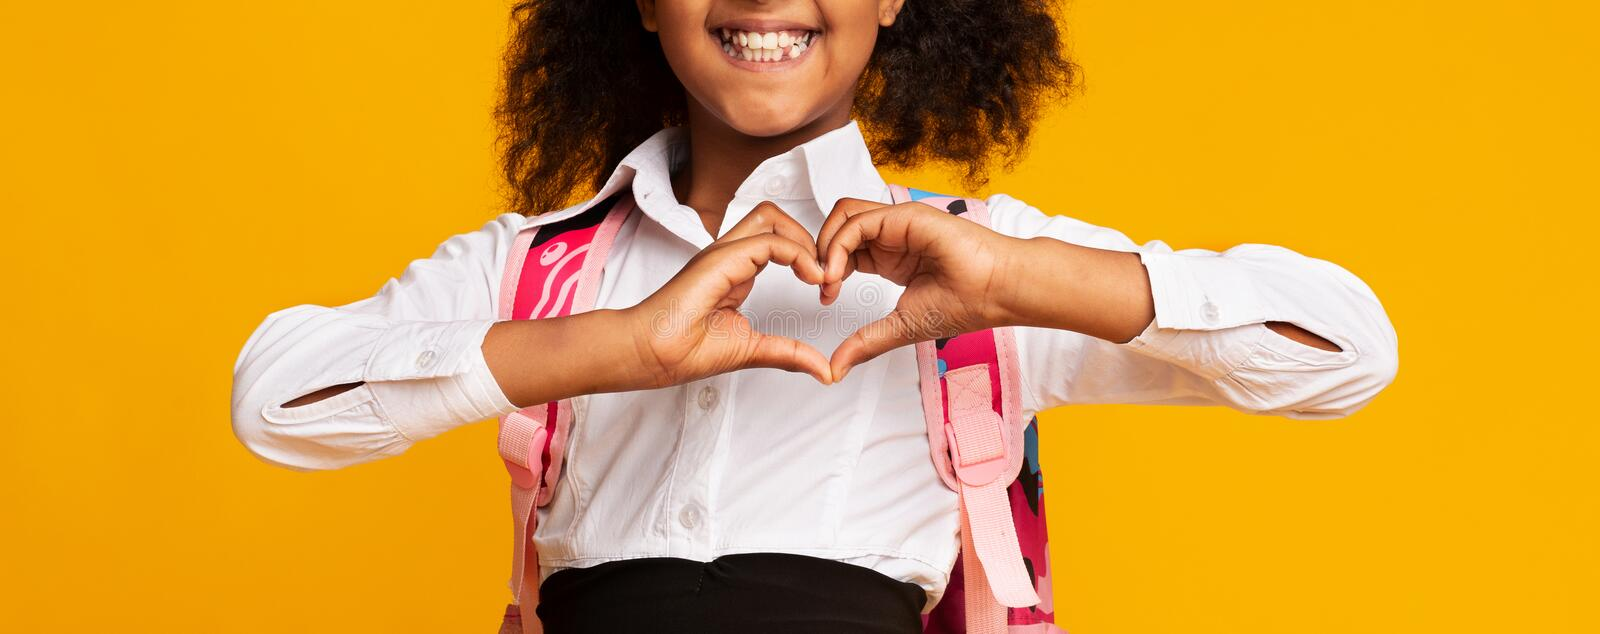 Unrecognizable Black Schoolgirl Showing Heart Shape Gesture On Yellow Background. Love School. Black Elementary Schoolgirl Showing Heart Shape Gesture With royalty free stock photos